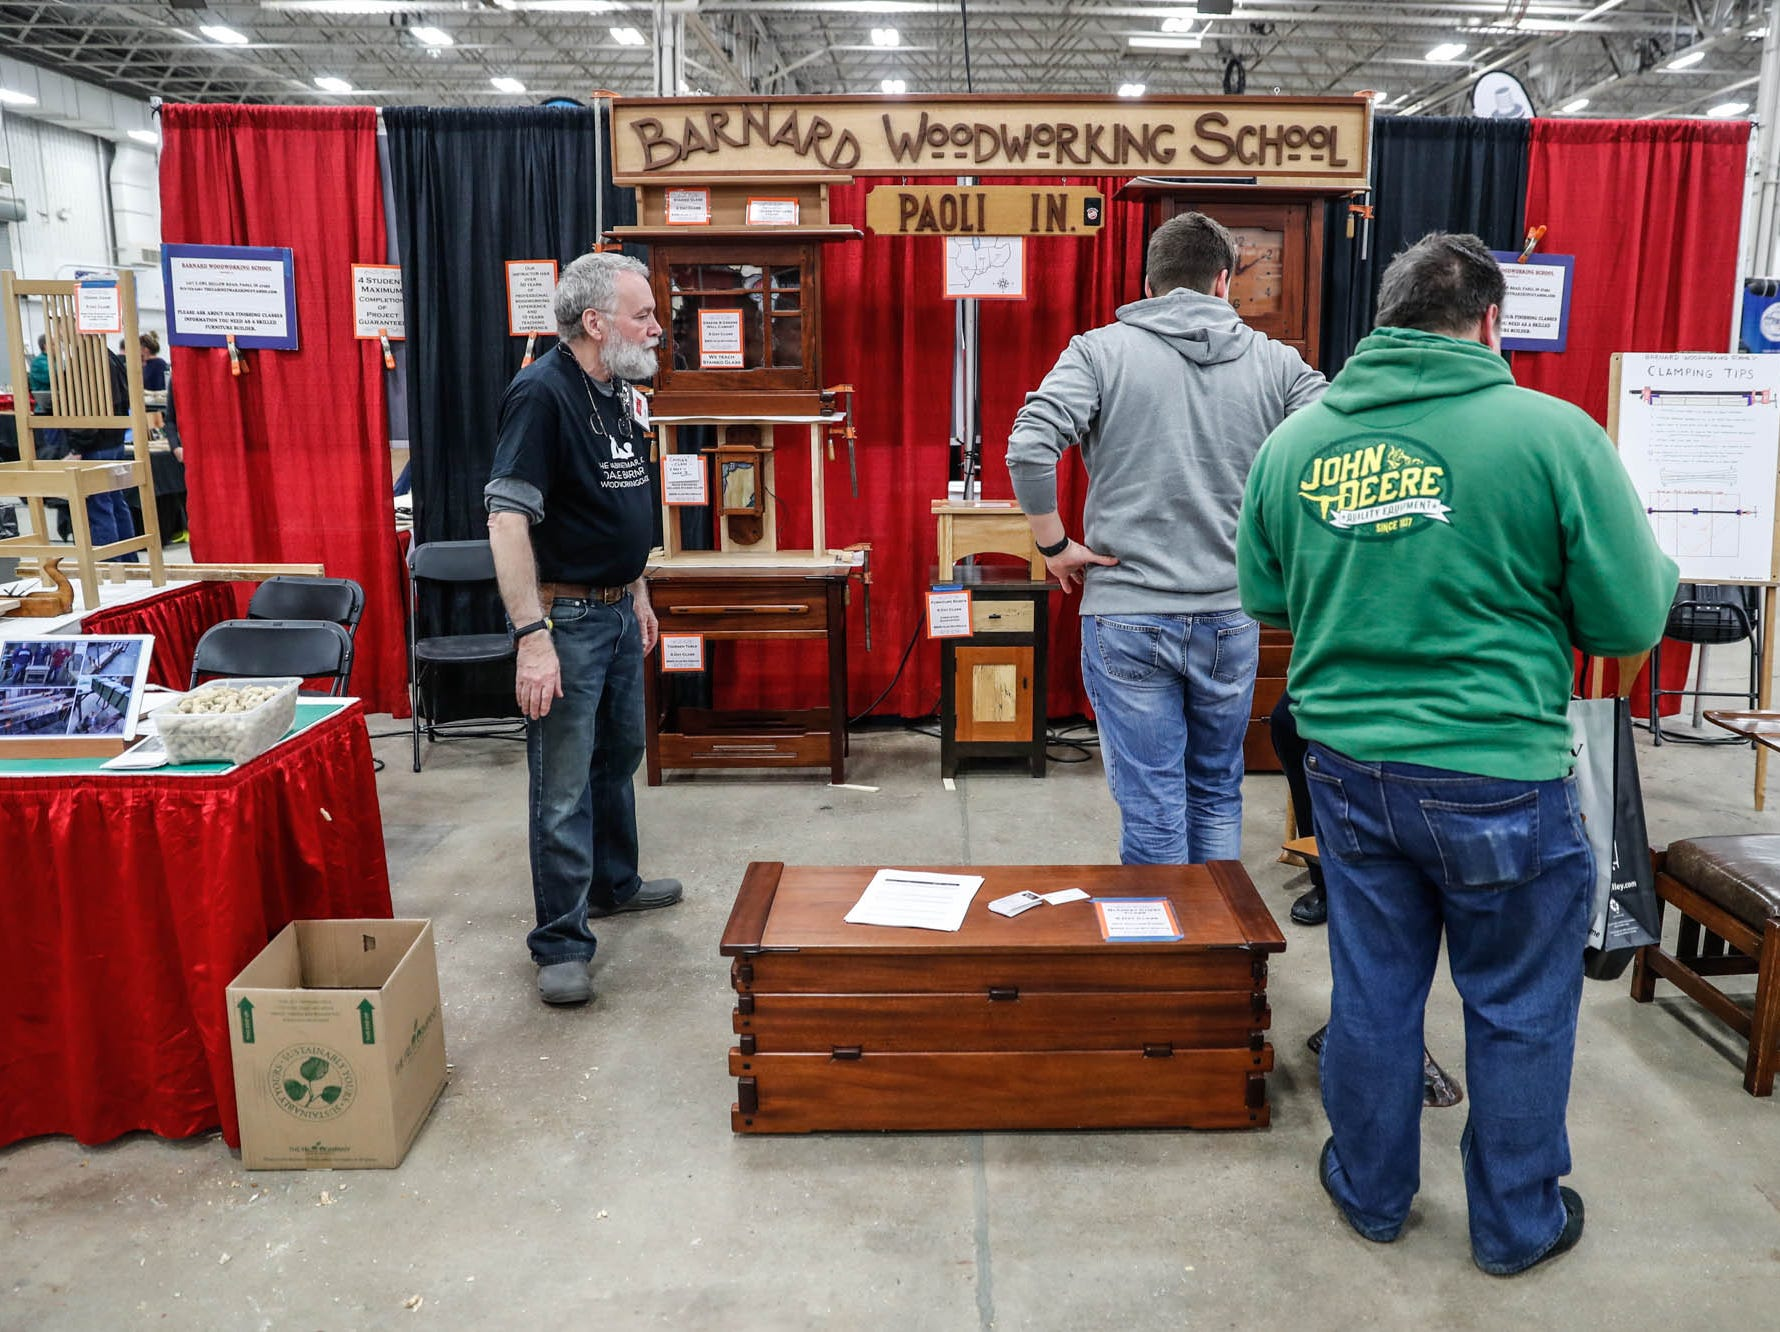 Guests look through the Barnard Woodworking School booth during a Wood Working Show at the Indiana State Fairgrounds in Indianapolis on Sunday, Feb. 3, 2019.